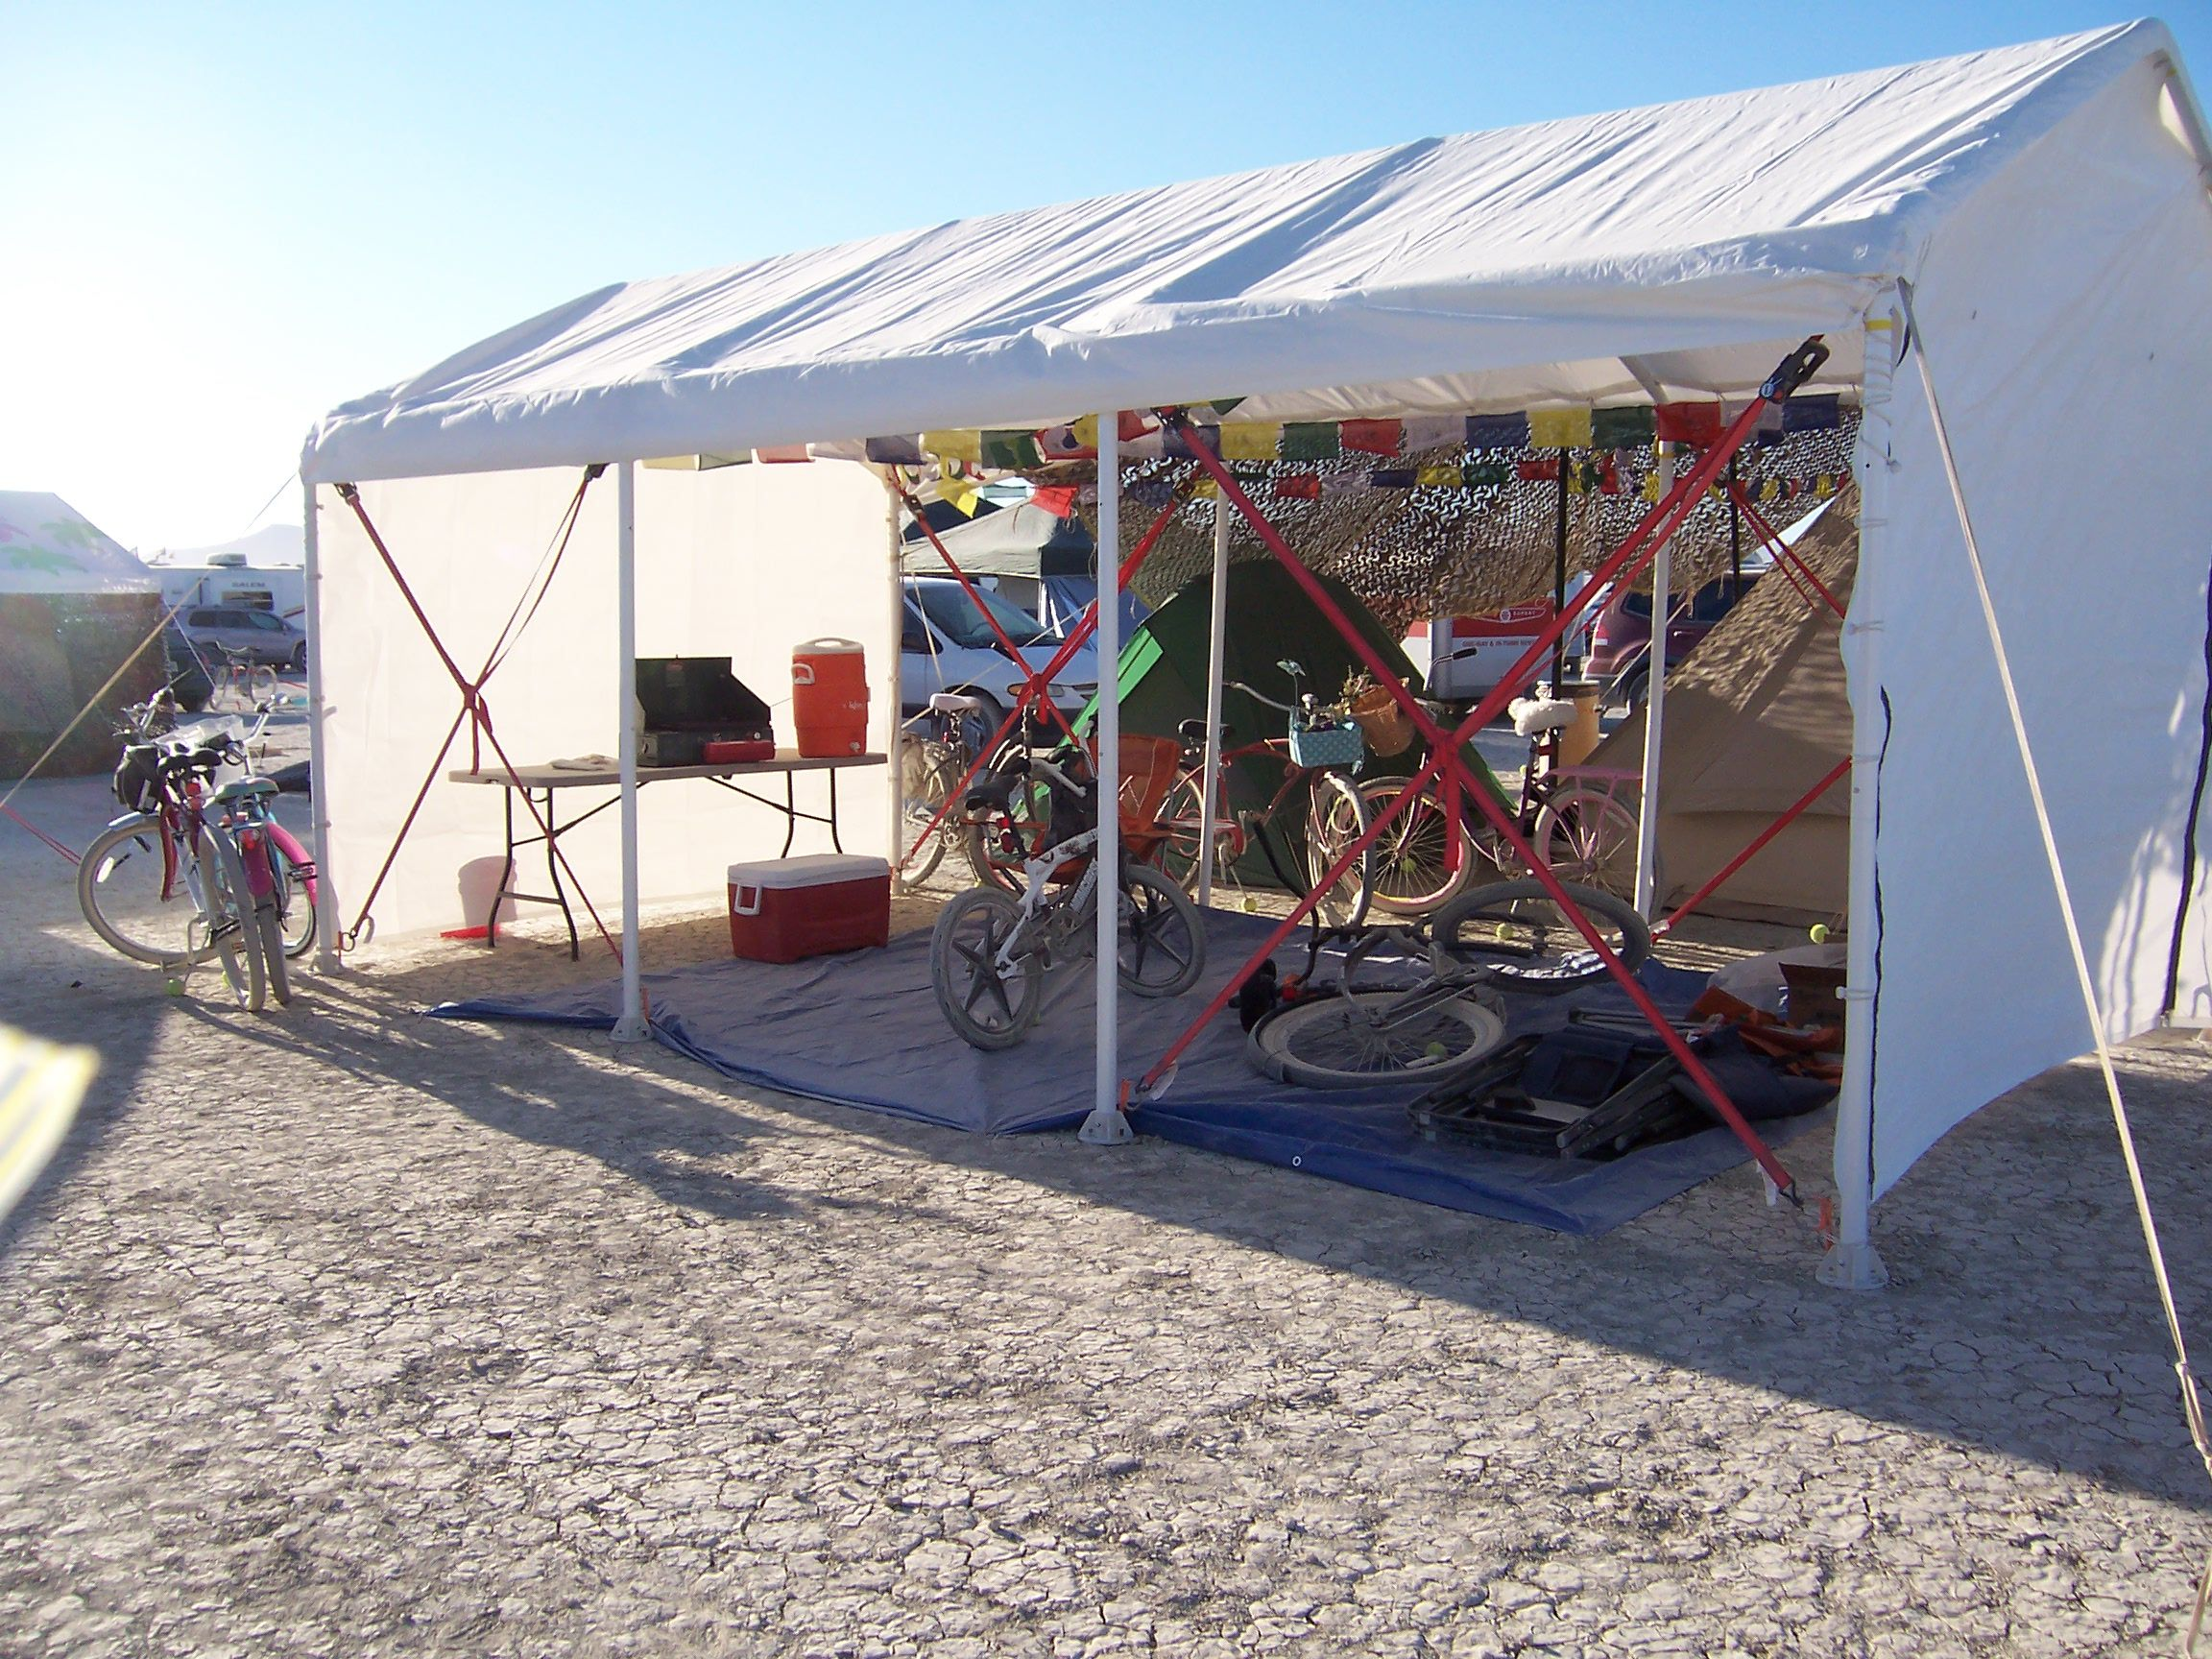 Lots of good ideas from Burning Man. Important tip here